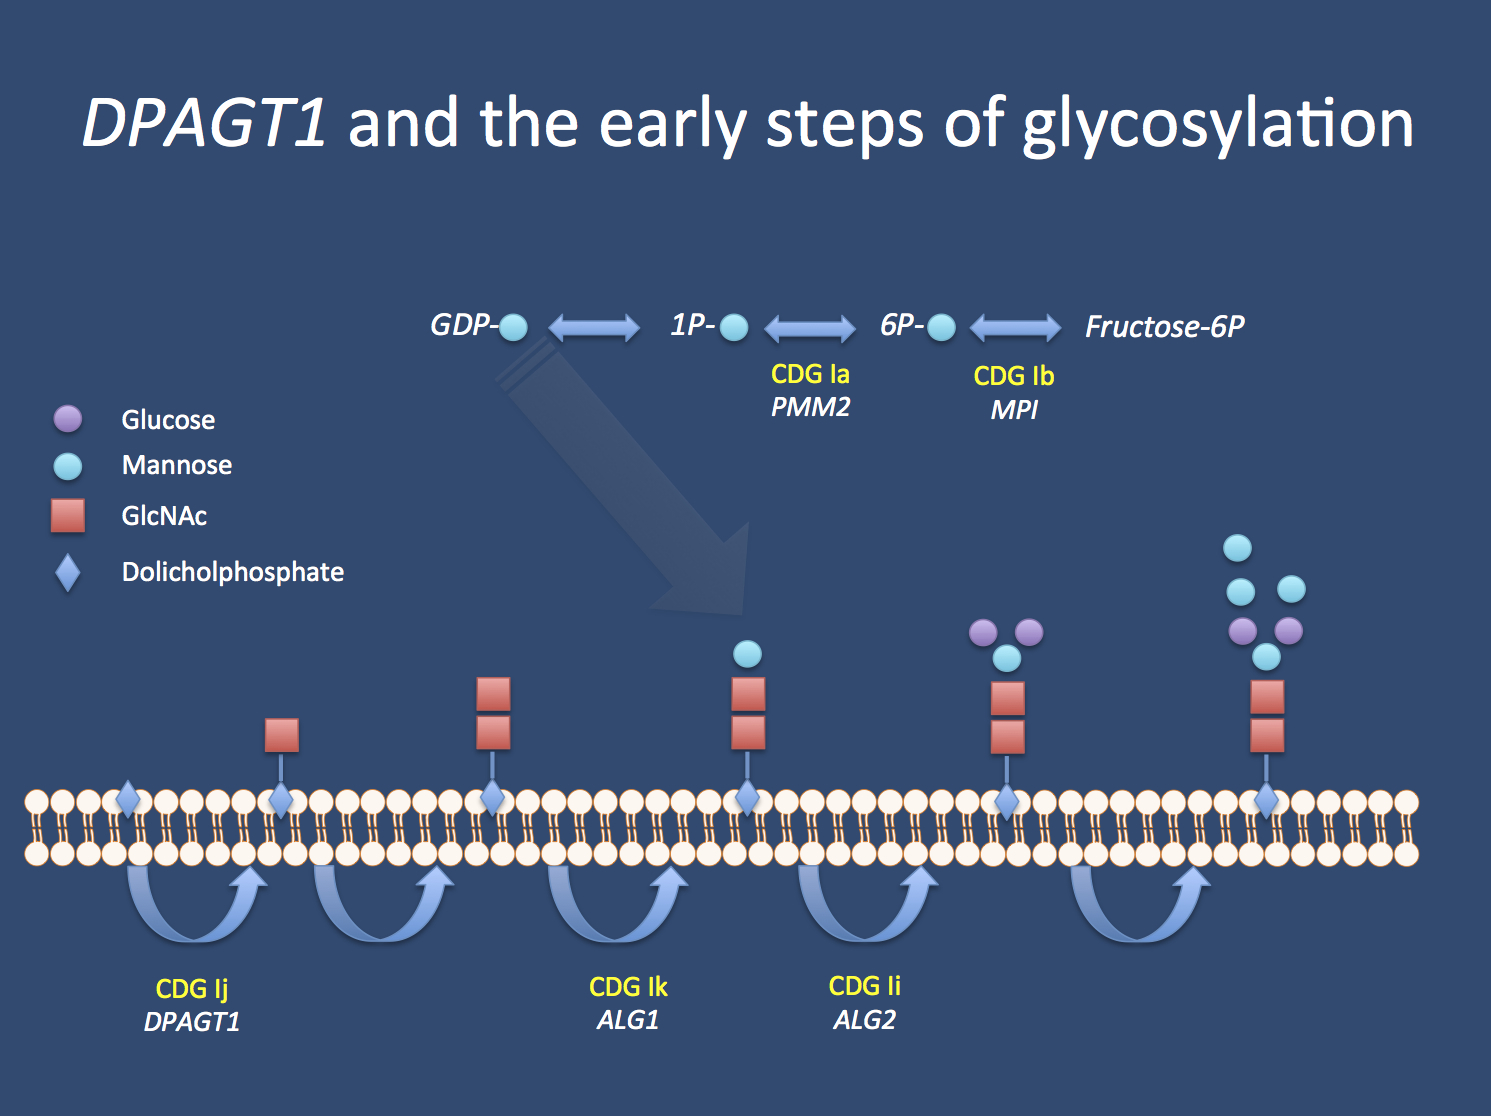 The first steps of glycosylation. Dolicholphosphate serves as an membrane-bound anchor for the construction of glycanes. Enzymes implicated in Congenital Disorders of Glycosylation Type I (CDG I) are involved in these early steps of glycane biogenesis, including DPAGT1, which results in CDG Ij if deficient.